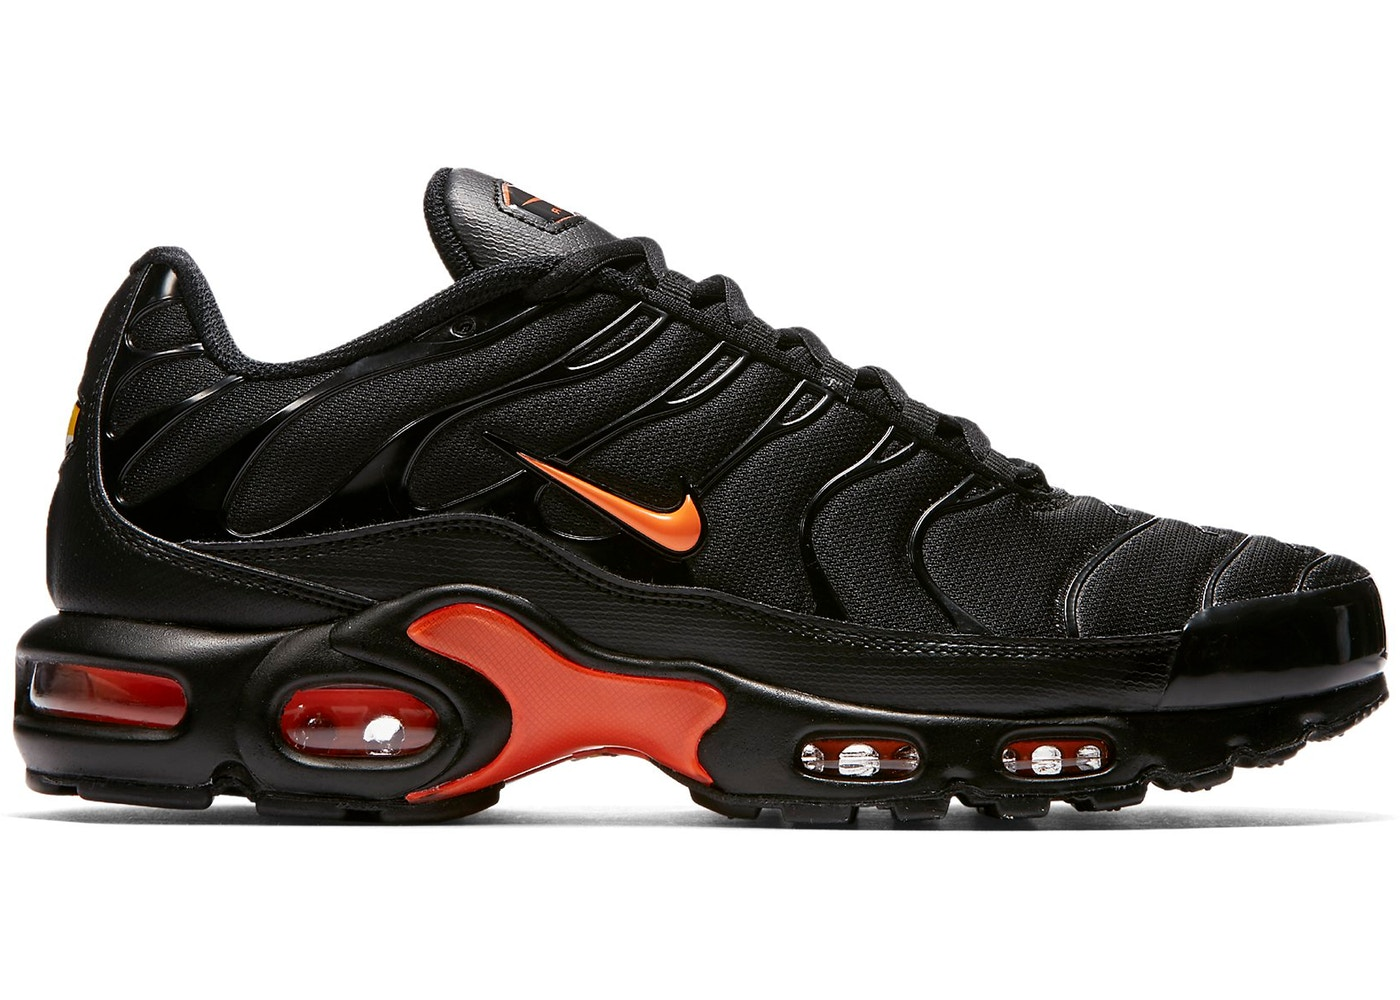 info for 2b670 4bffa Air Max Plus Black Orange